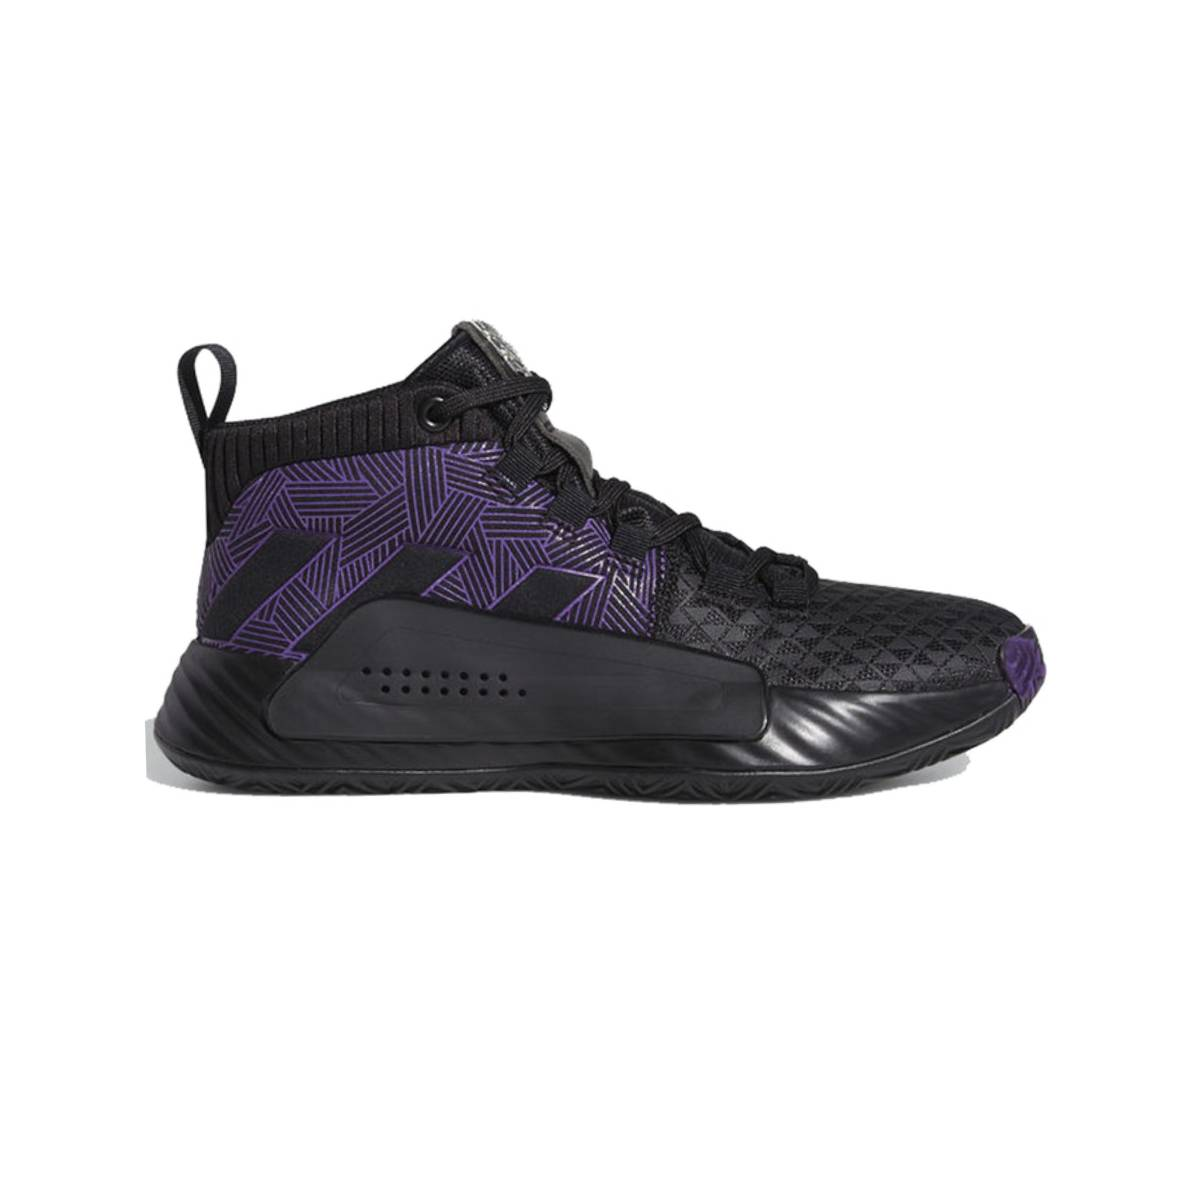 Details about Adidas Kid's Dame 5 Marvel Black Panther Wakanda GS Basketball Shoes EG2627